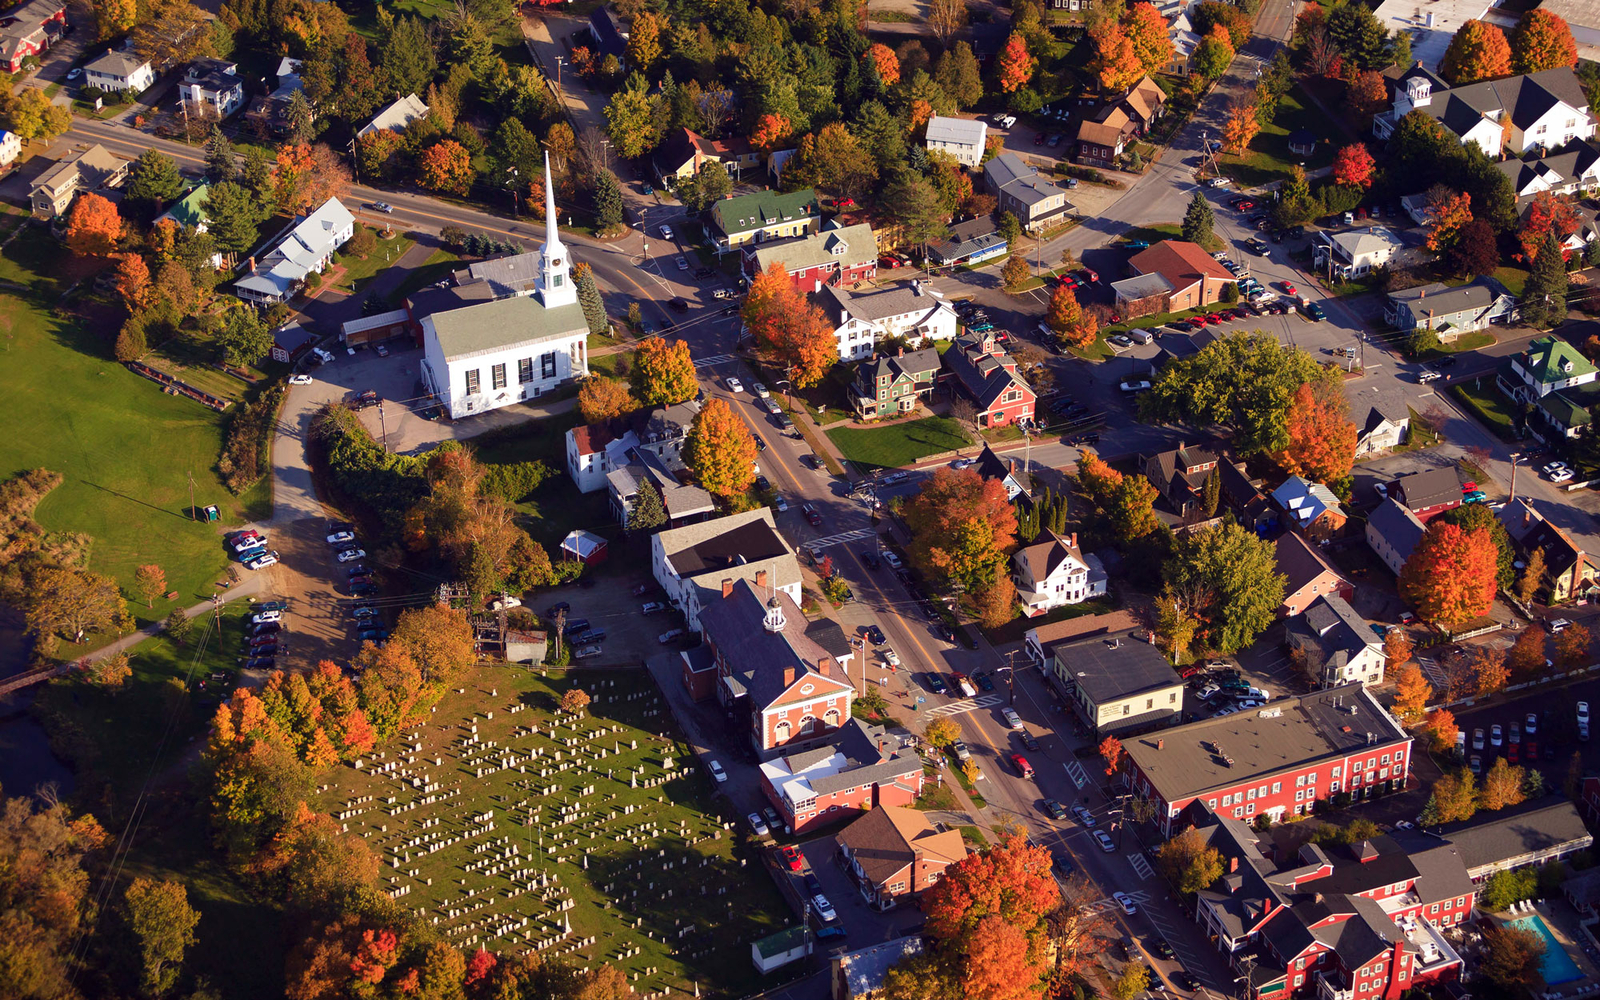 America's Best Towns For Halloween